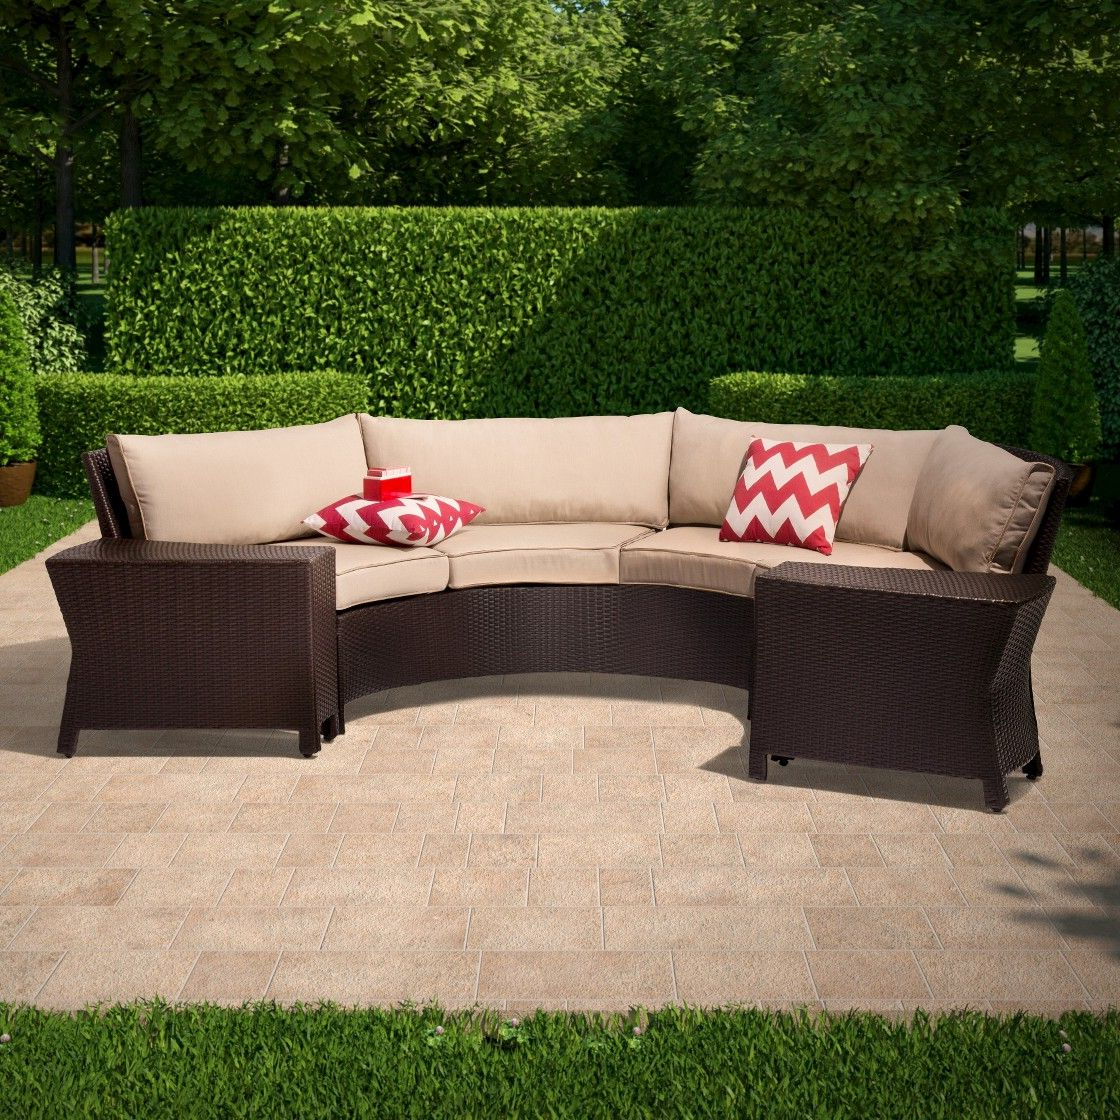 Stockwell Patio Sofas With Cushions Pertaining To Newest Threshold Harrison 6 Piece Wicker Sectional Patio Seating (View 10 of 20)